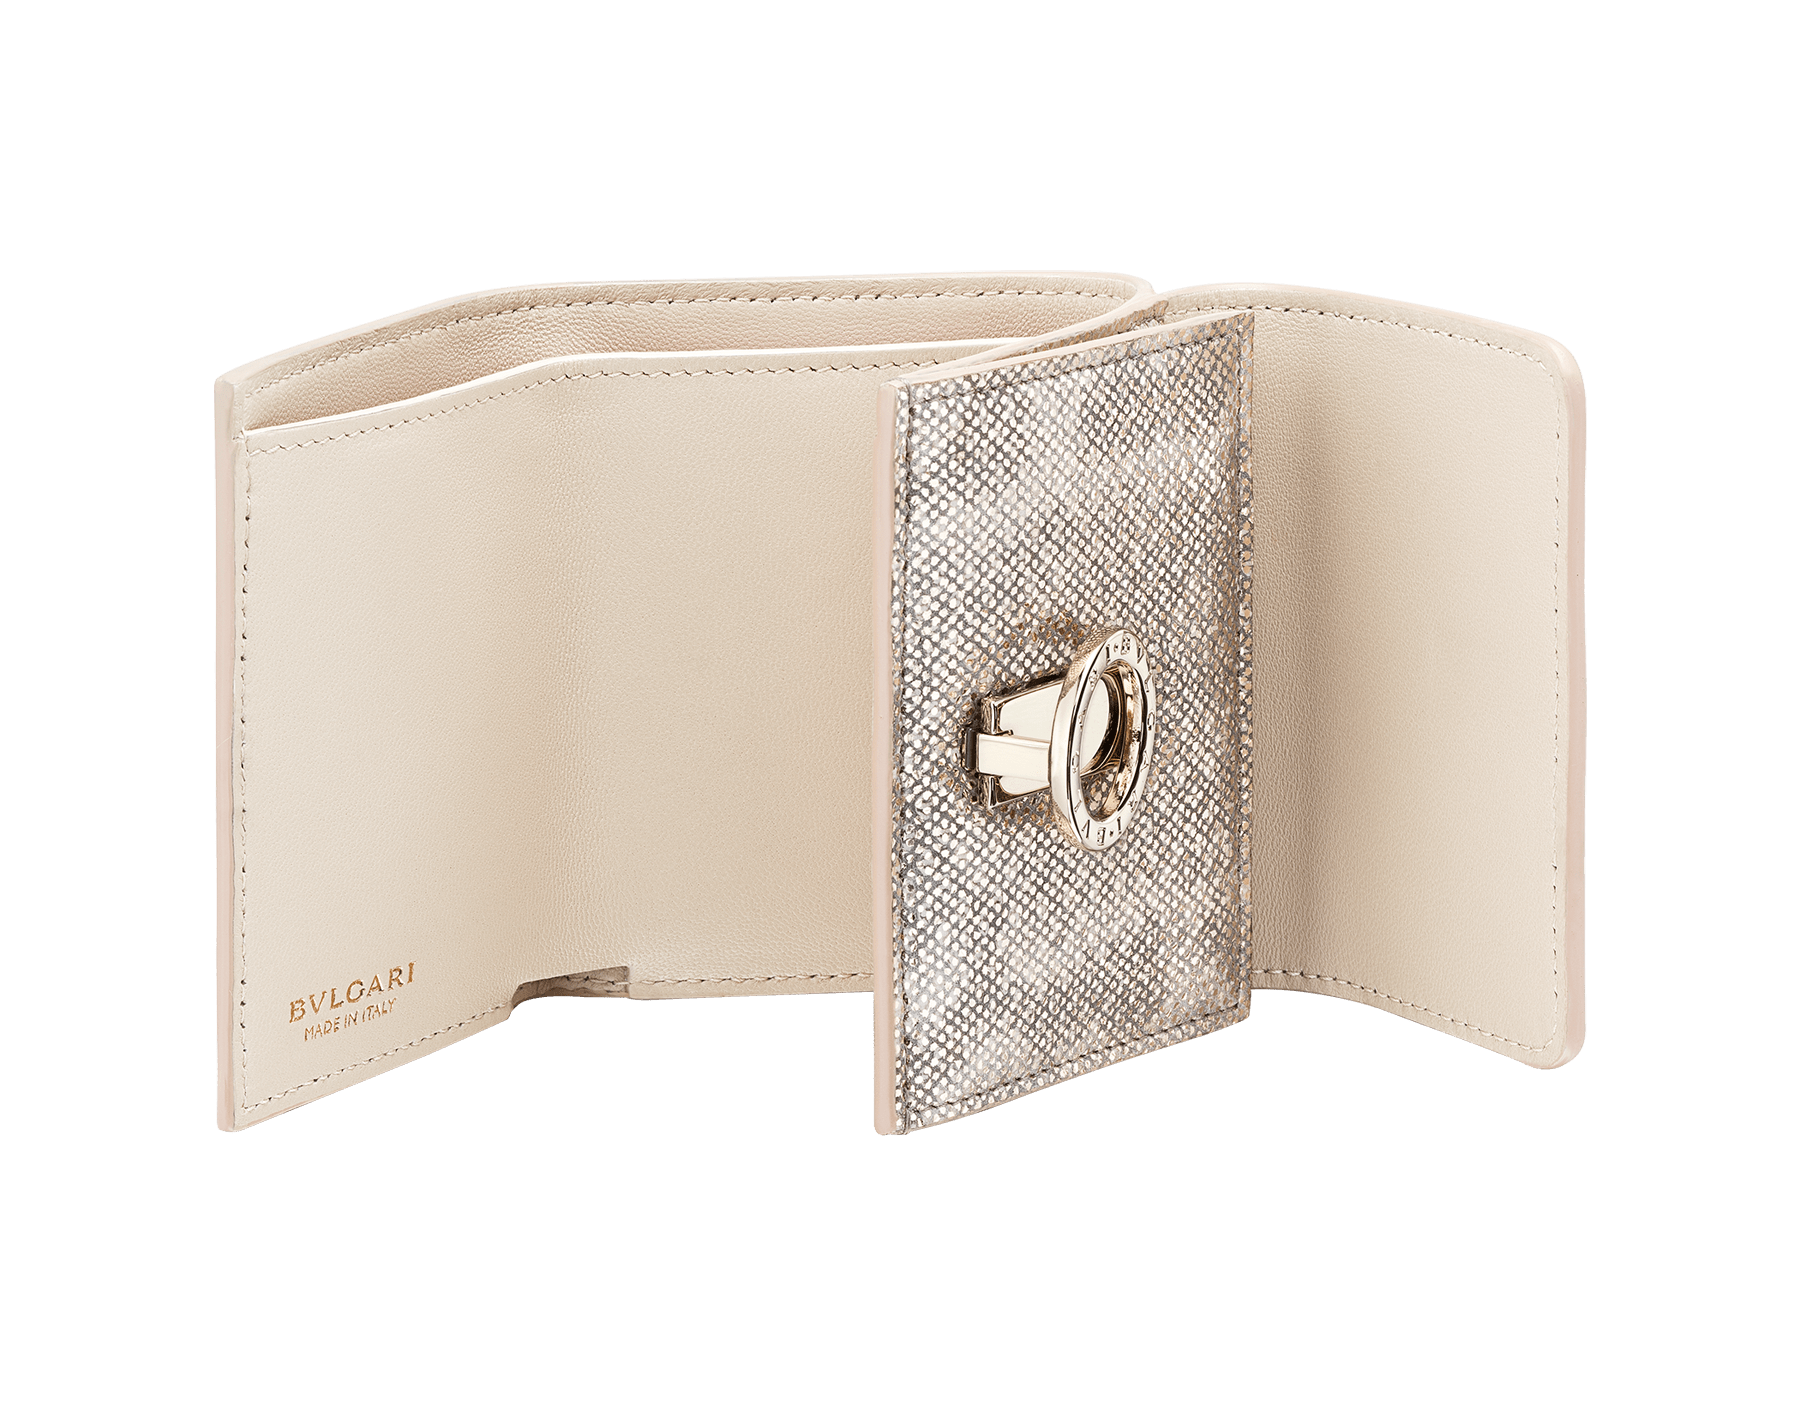 BVLGARI BVLGARI compact wallet in milky opal metallic karung skin and milky opal nappa leather. Iconic logo closure clip in light gold plated brass on the flap and press button closure on the body. 579-MINICOMPACT-K image 2